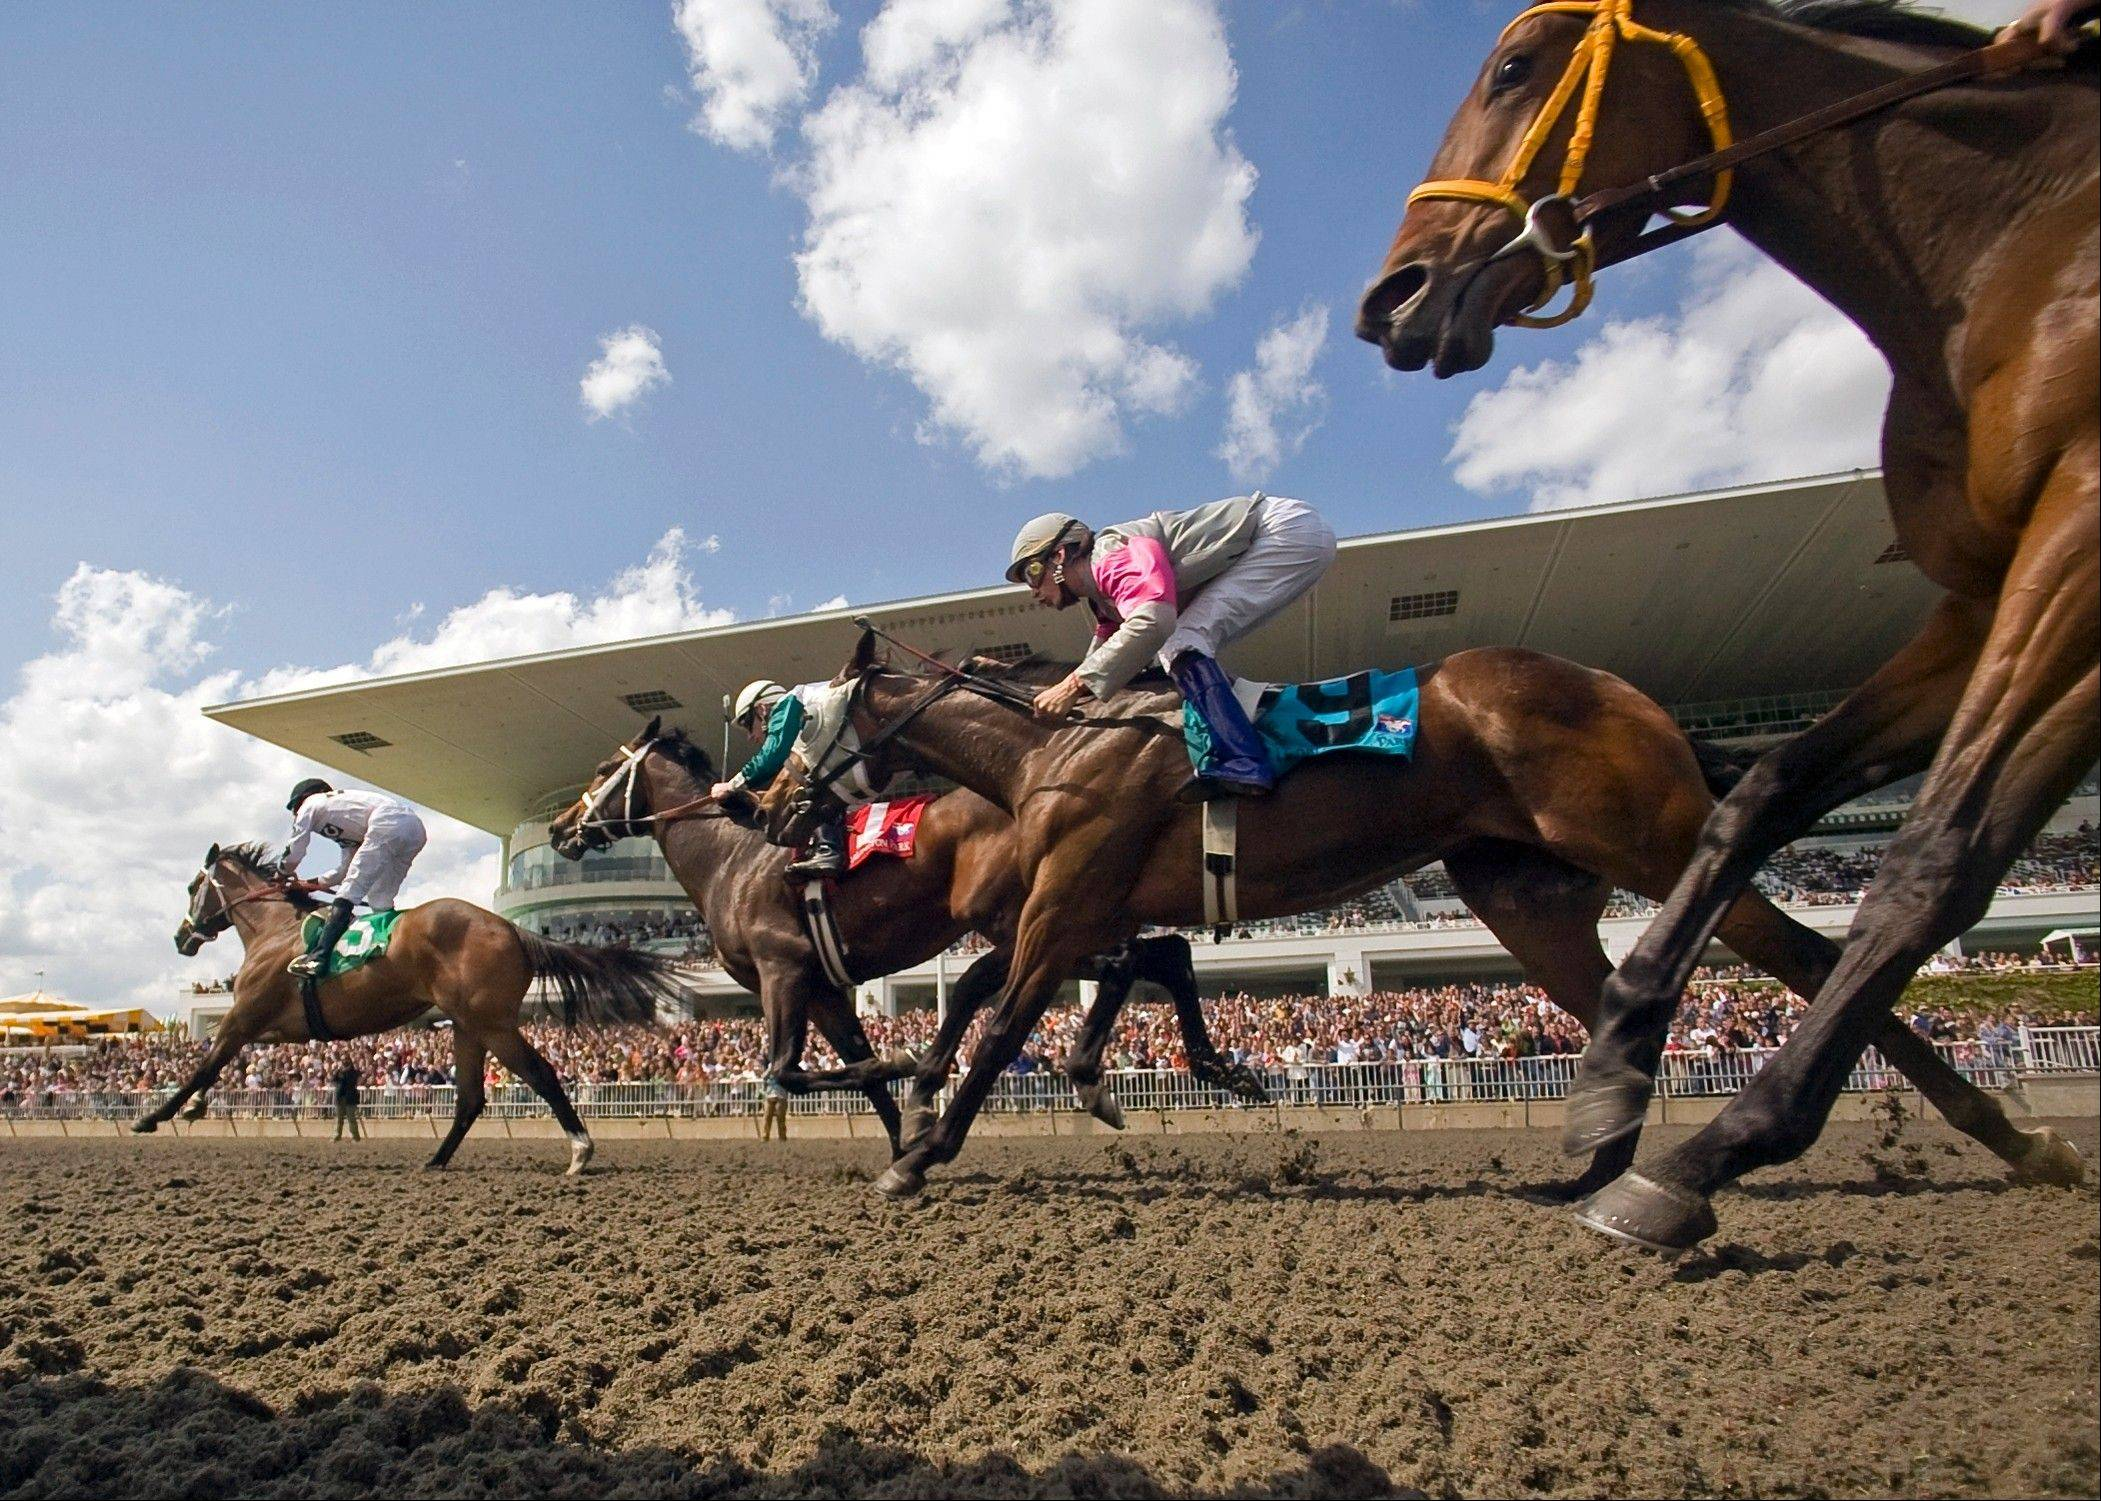 With the Illinois Racing Board unsettled over its funding, the start of the 2014 thoroughbred racing season remains uncertain. The IRB has laid out for possibilities as it awaits funding from the state legislature to be renewed.